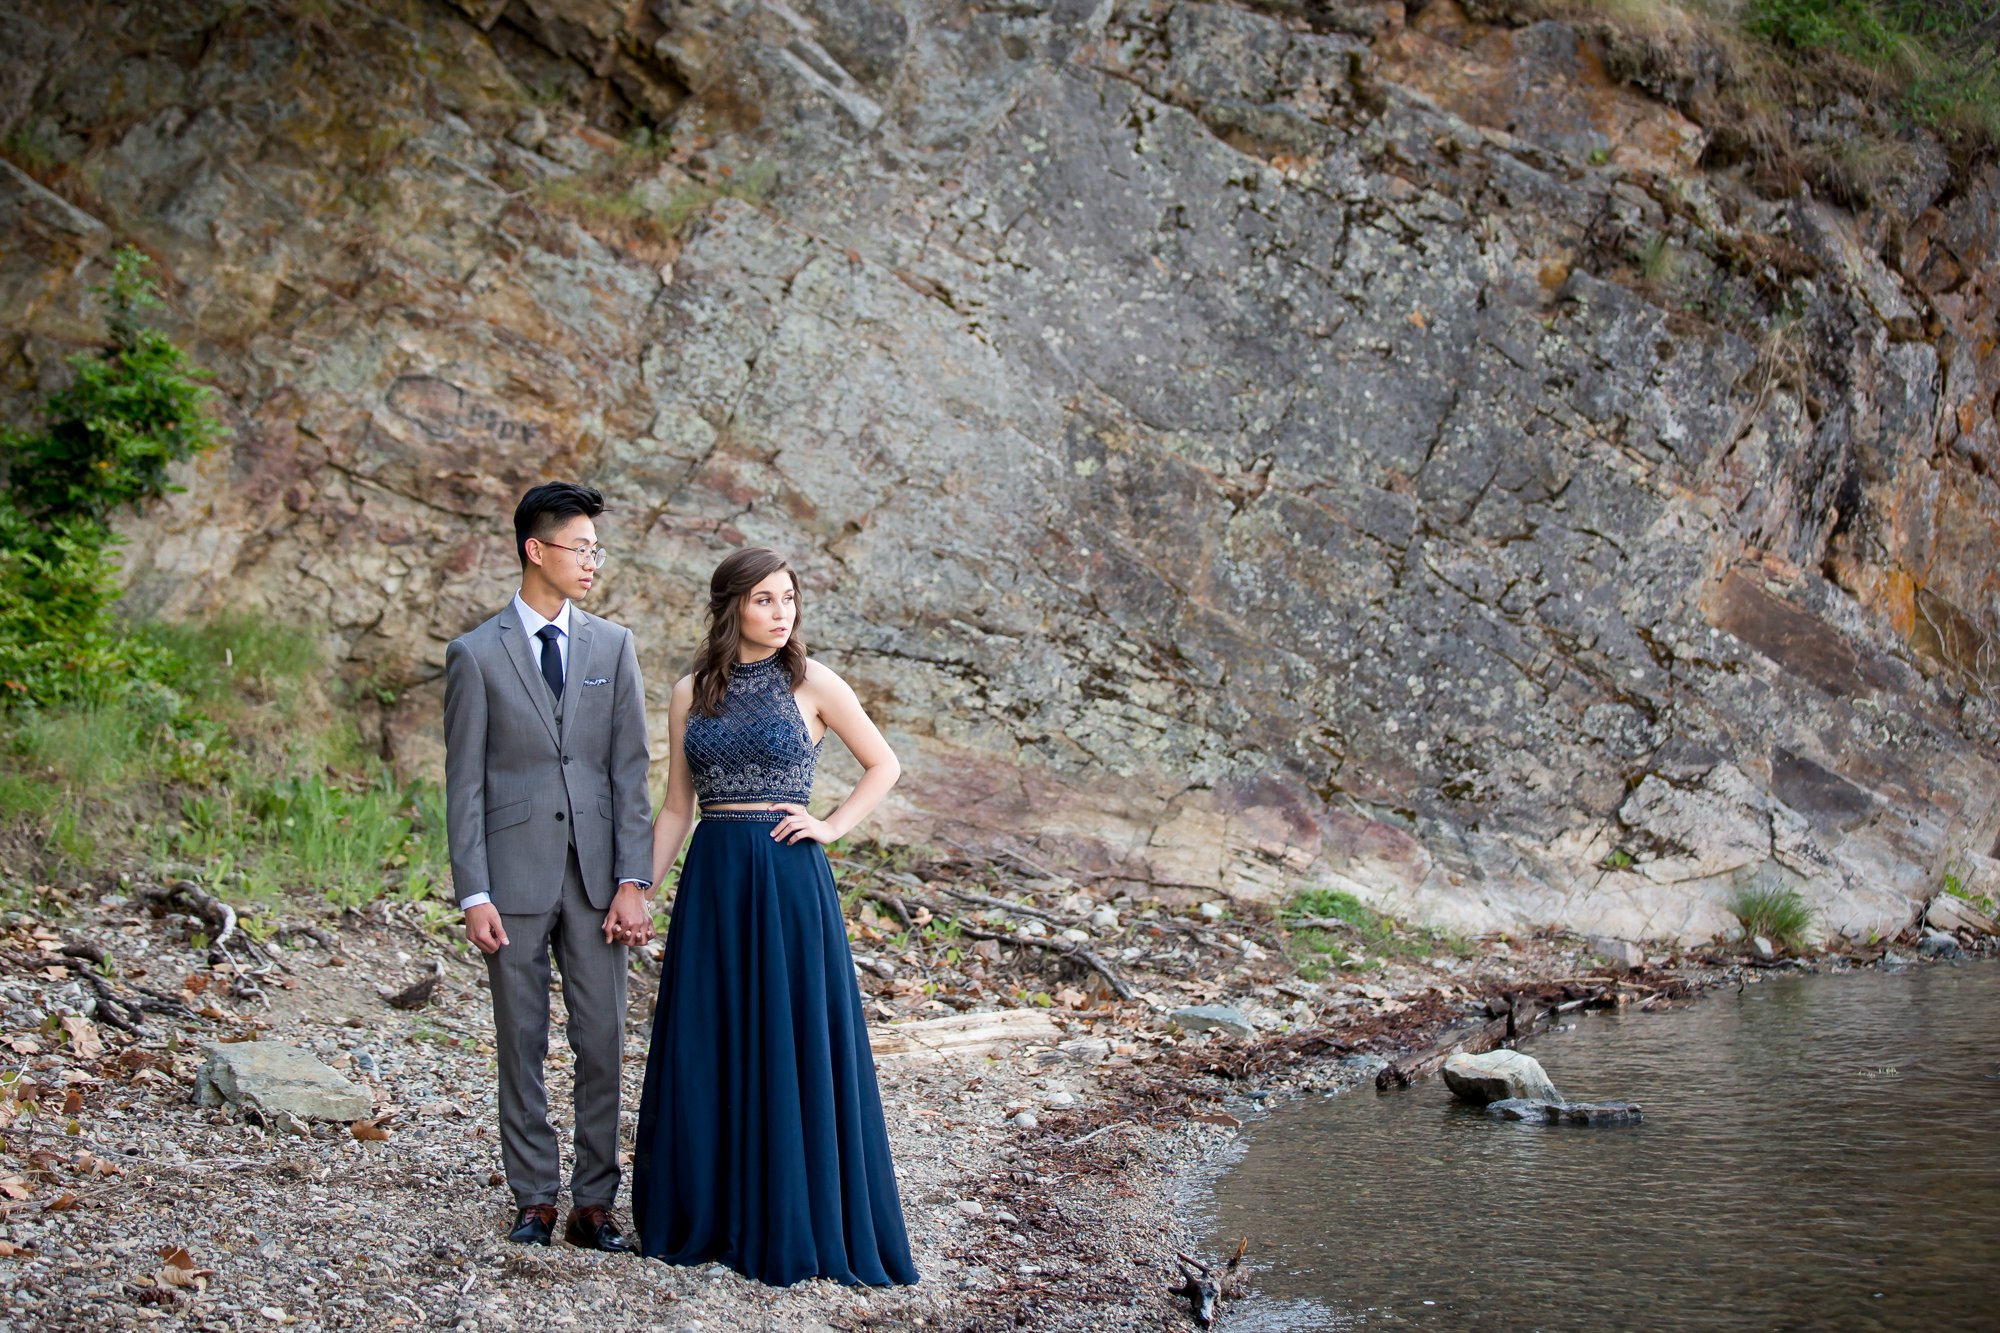 A grad standing lakeside with her date